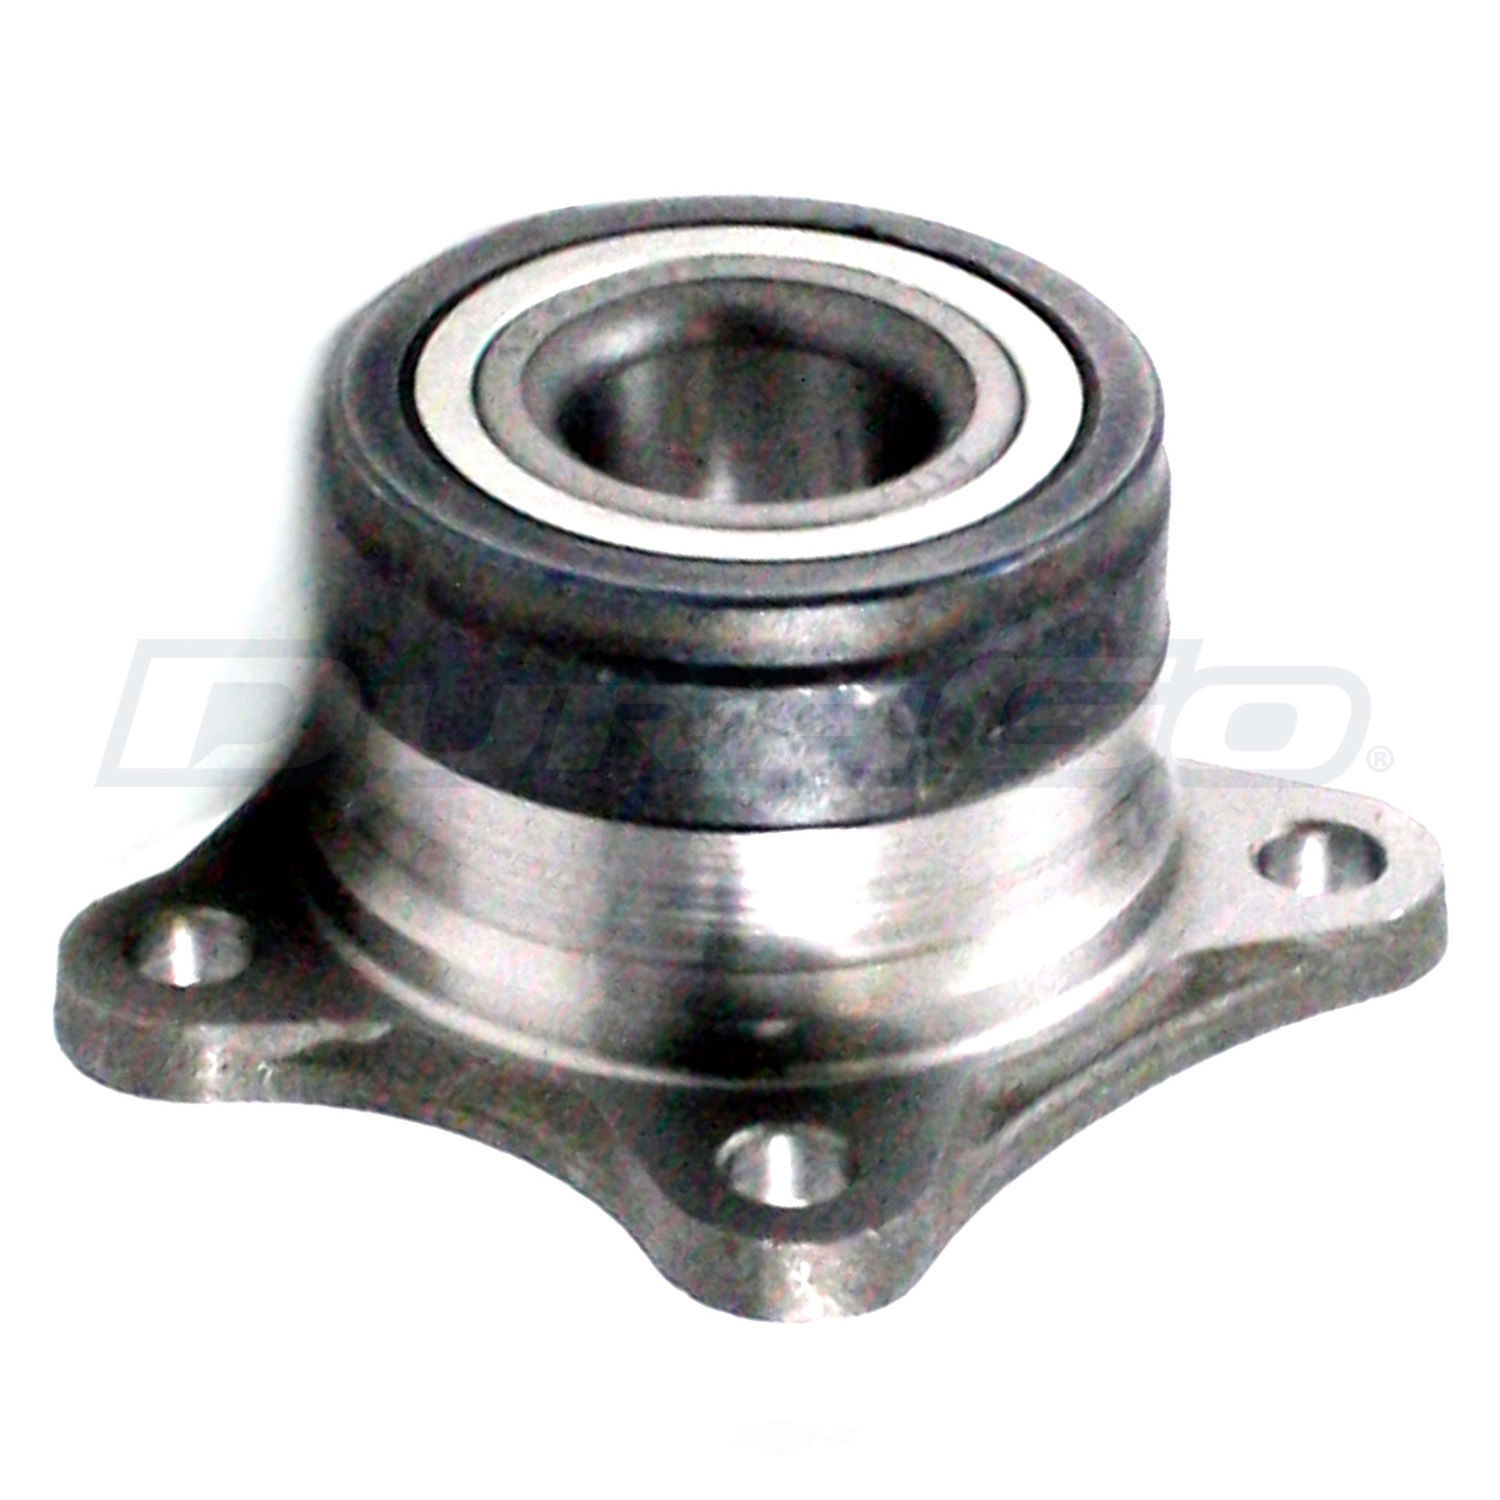 DURAGO - Wheel Bearing Assembly - D48 295-12137